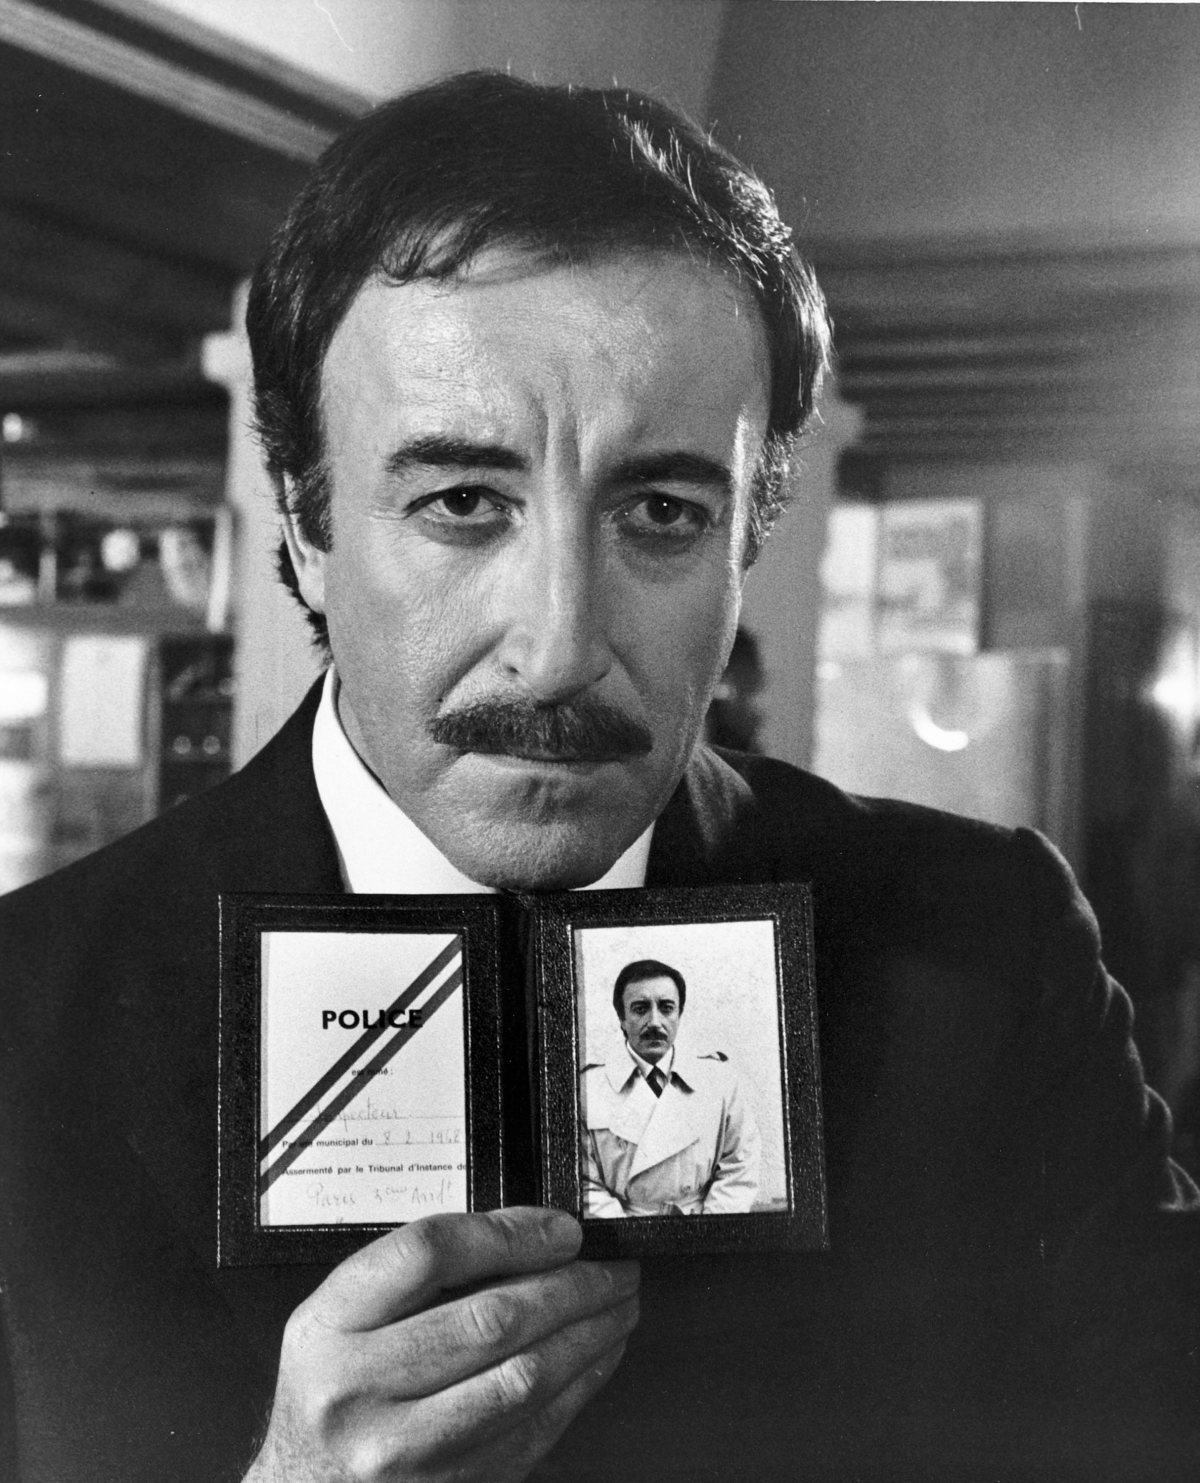 Peter Sellers (as Chief Insp. Jacques Clouseau) The Return of the Pink Panther (1975) Directed by Blake Edwards  1976 Supplied by WENN This is a PR photo. WENN does not claim any Copyright or License in the attached material. Fees charged by WENN are for WENN's services only, and do not, nor are they intended to, convey to the user any ownership of Copyright or License in the material. By publishing this material, the user expressly agrees to indemnify and to hold WENN harmless from any claims, demands, or causes of action arising out of or connected in any way with user's publication of the material.